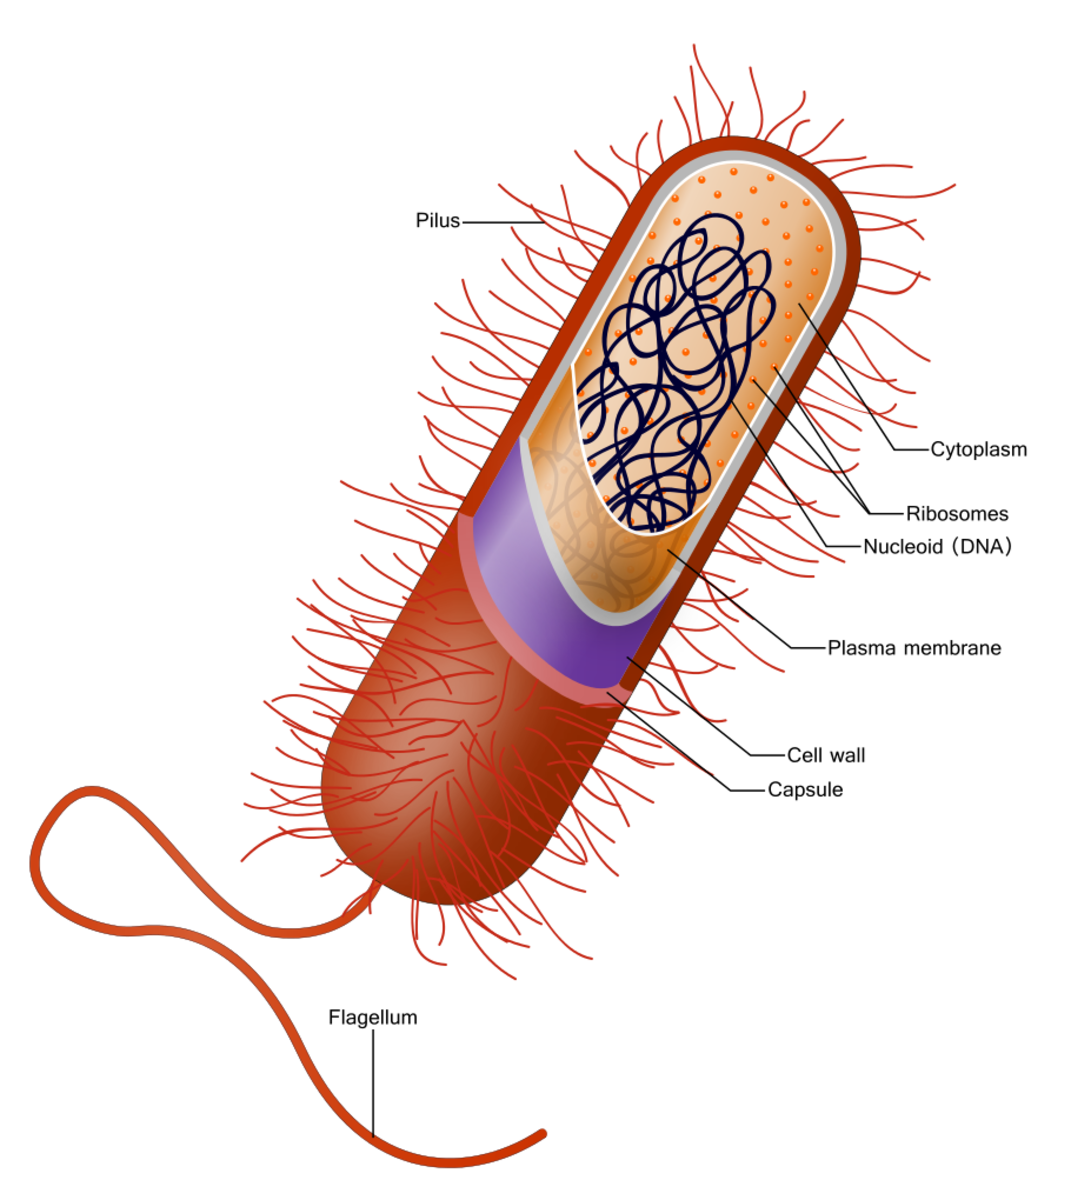 A gram-positive bacterial cell